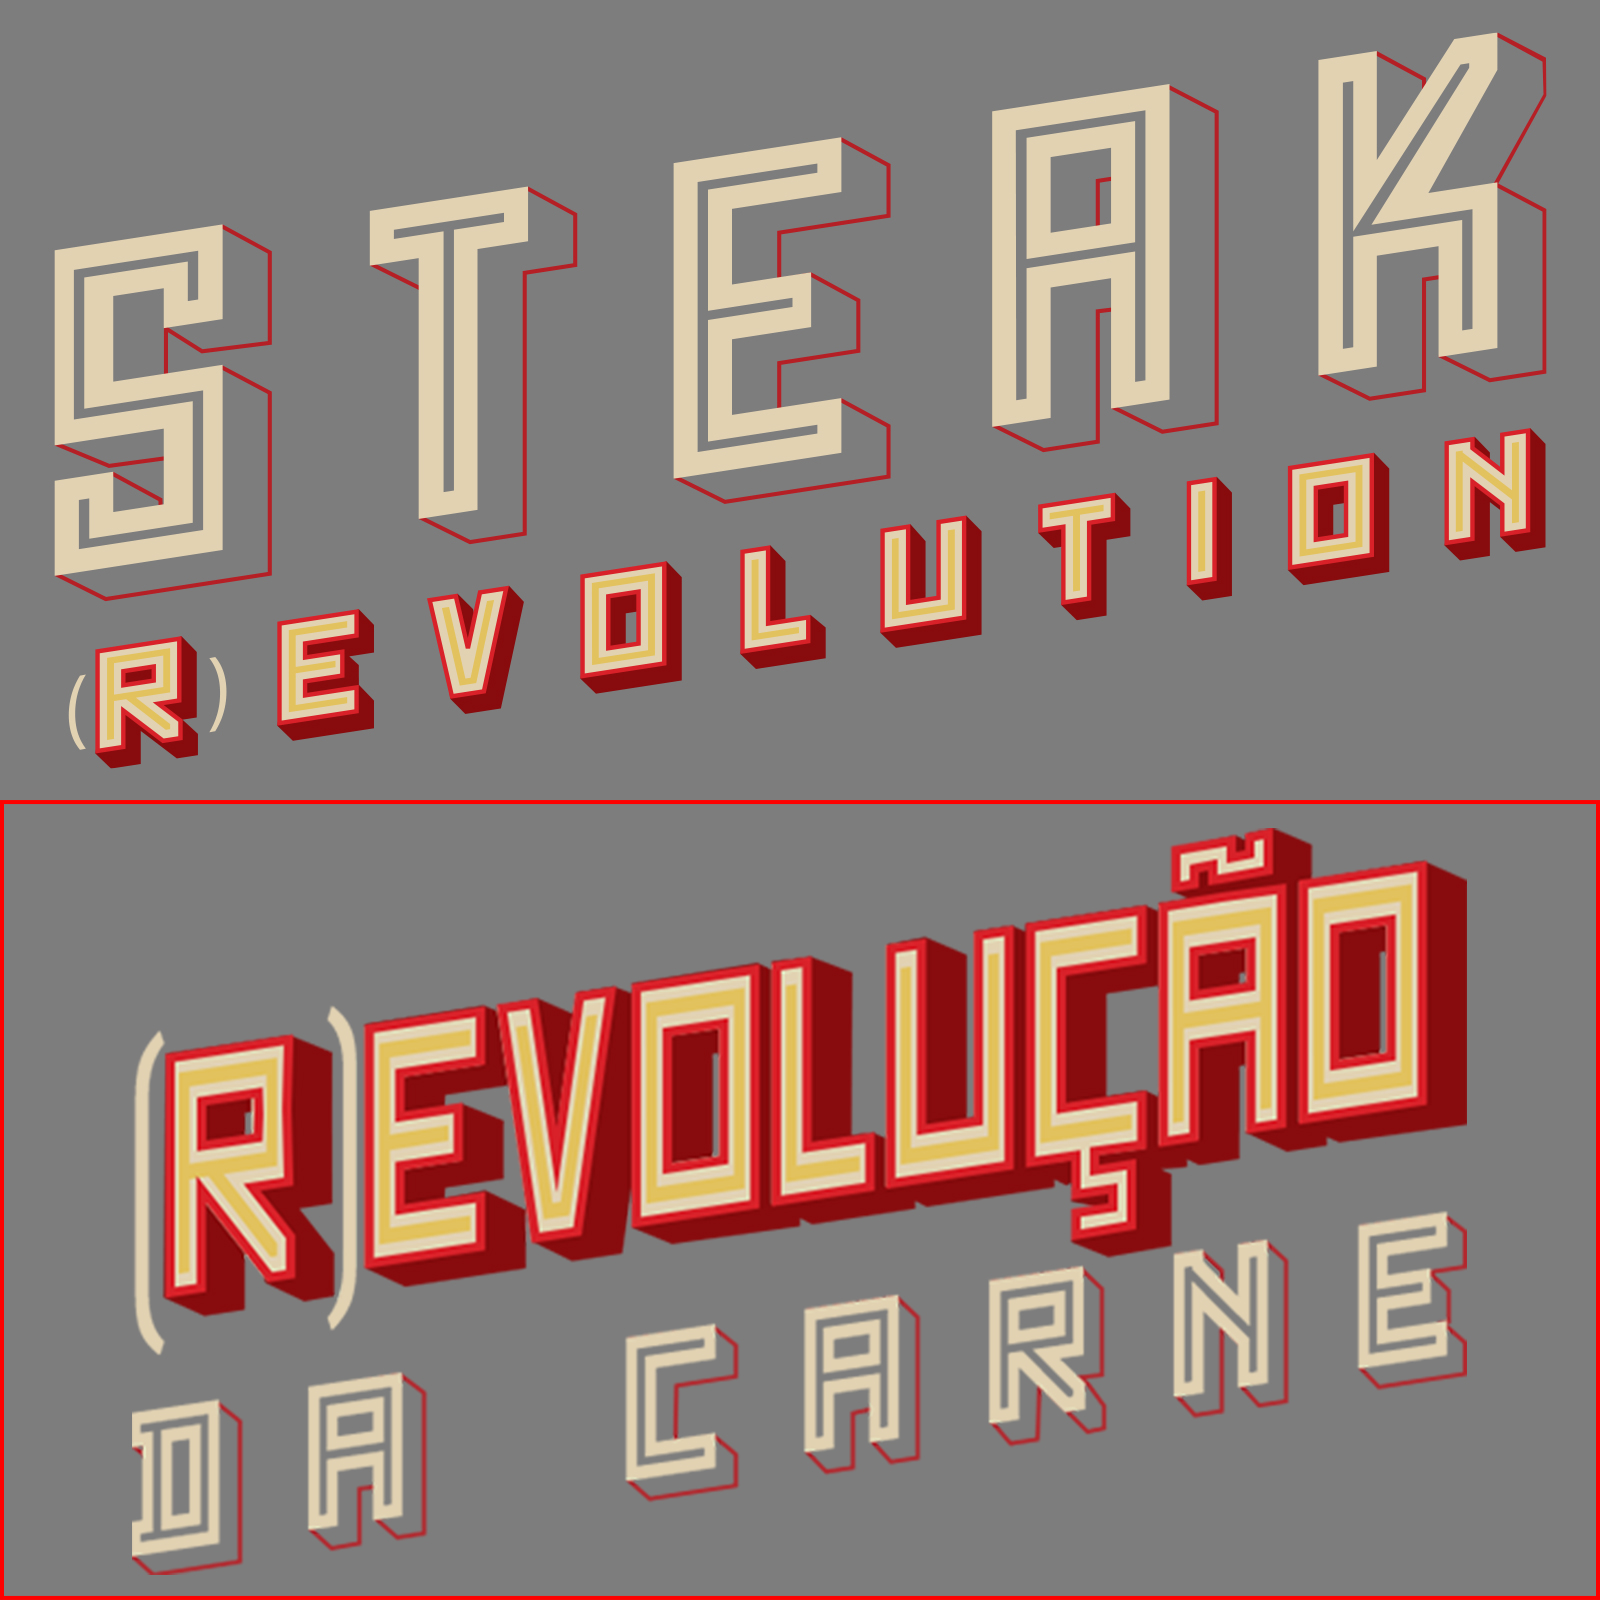 Steak-Revolution_PTB_TT-QC.jpg